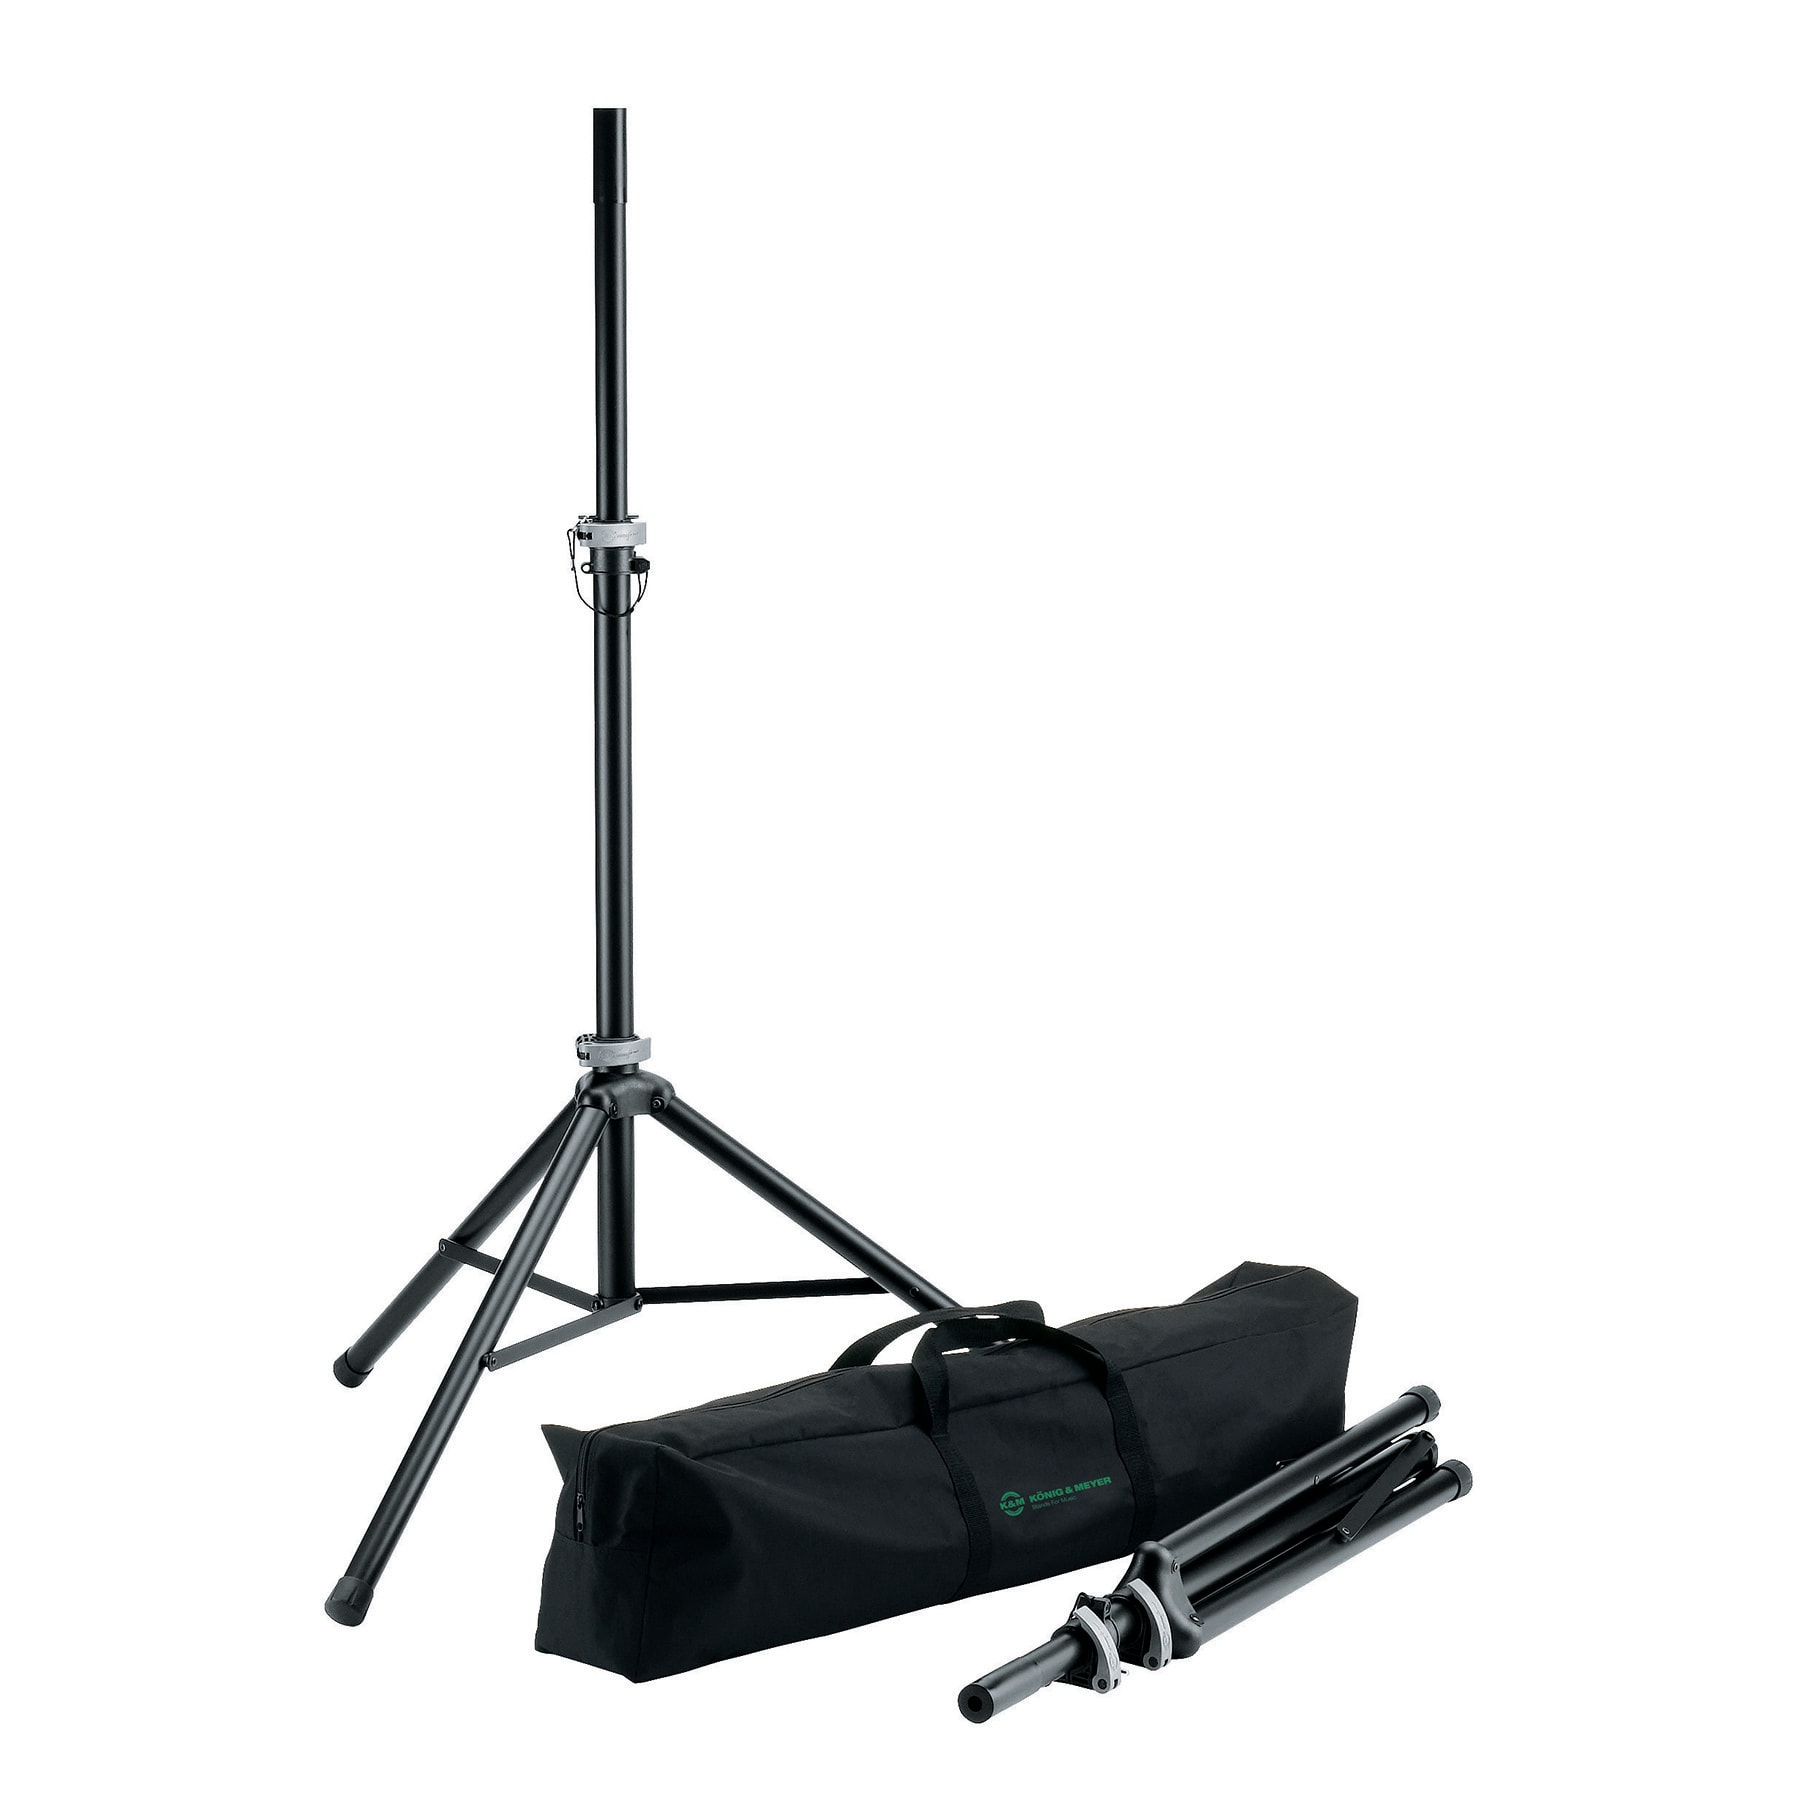 KM21459 - Speaker stand package